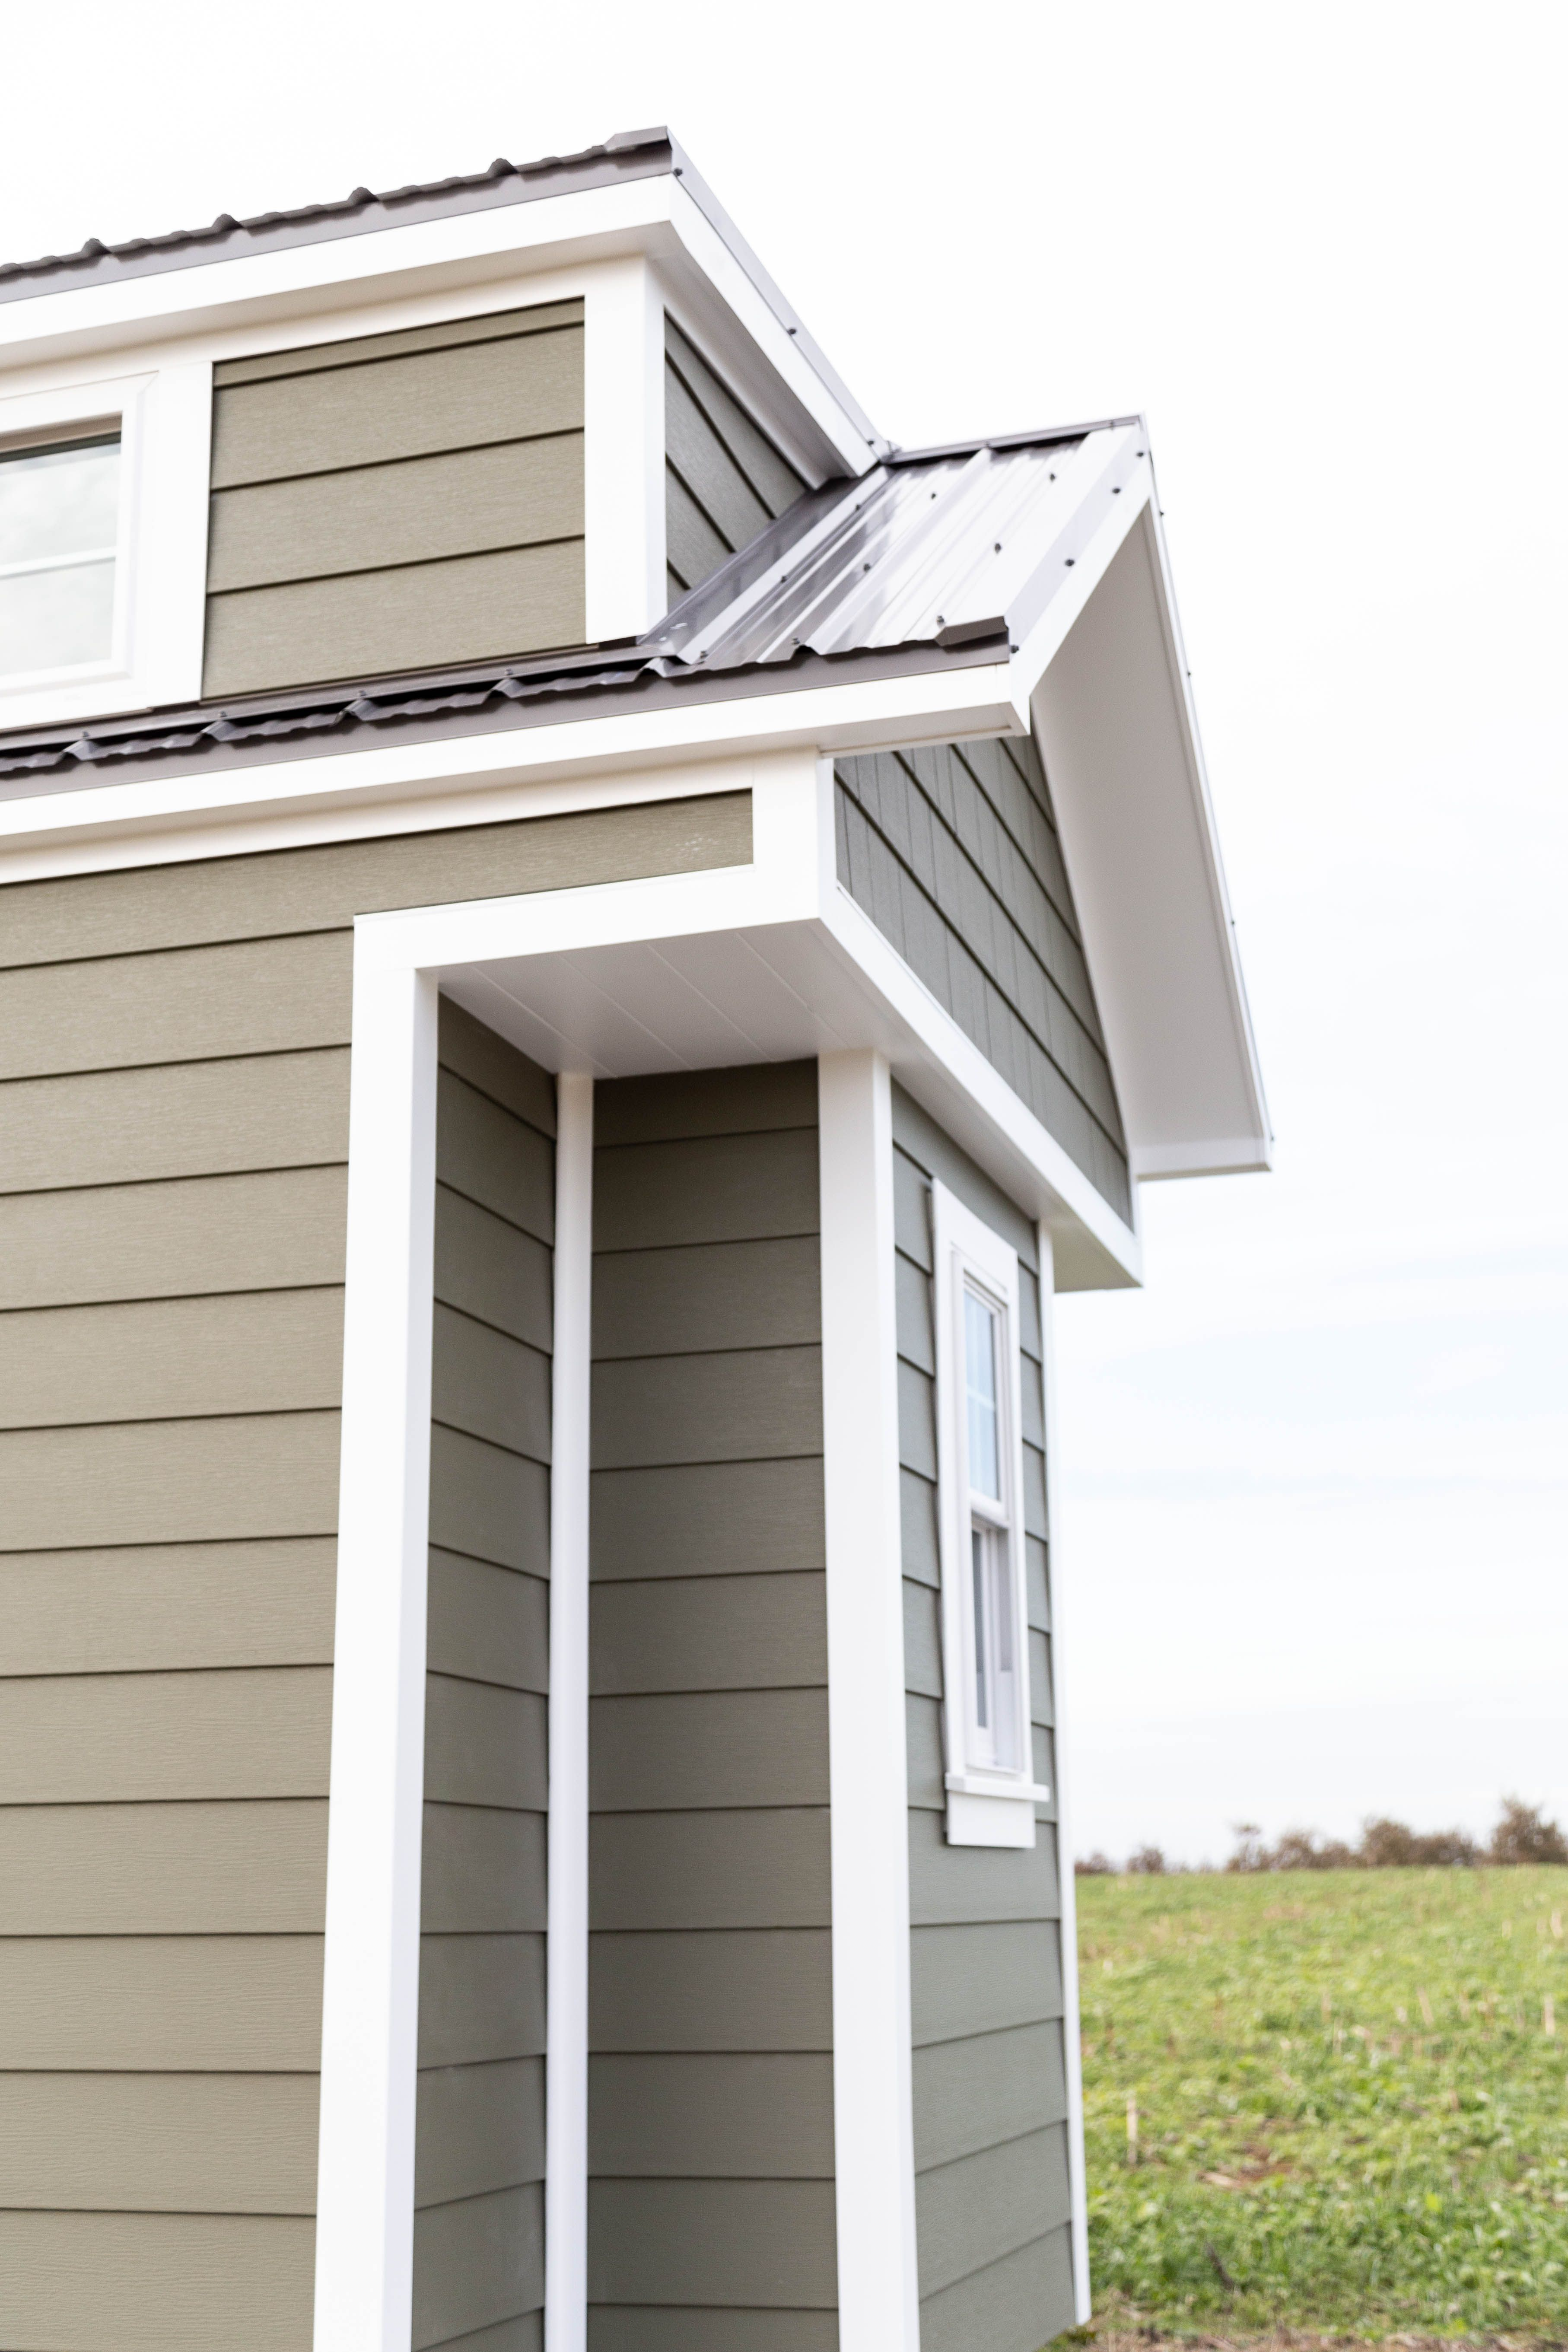 The Craftsman Celect Siding In 2020 Tiny Houses For Sale Craftsman Tiny House